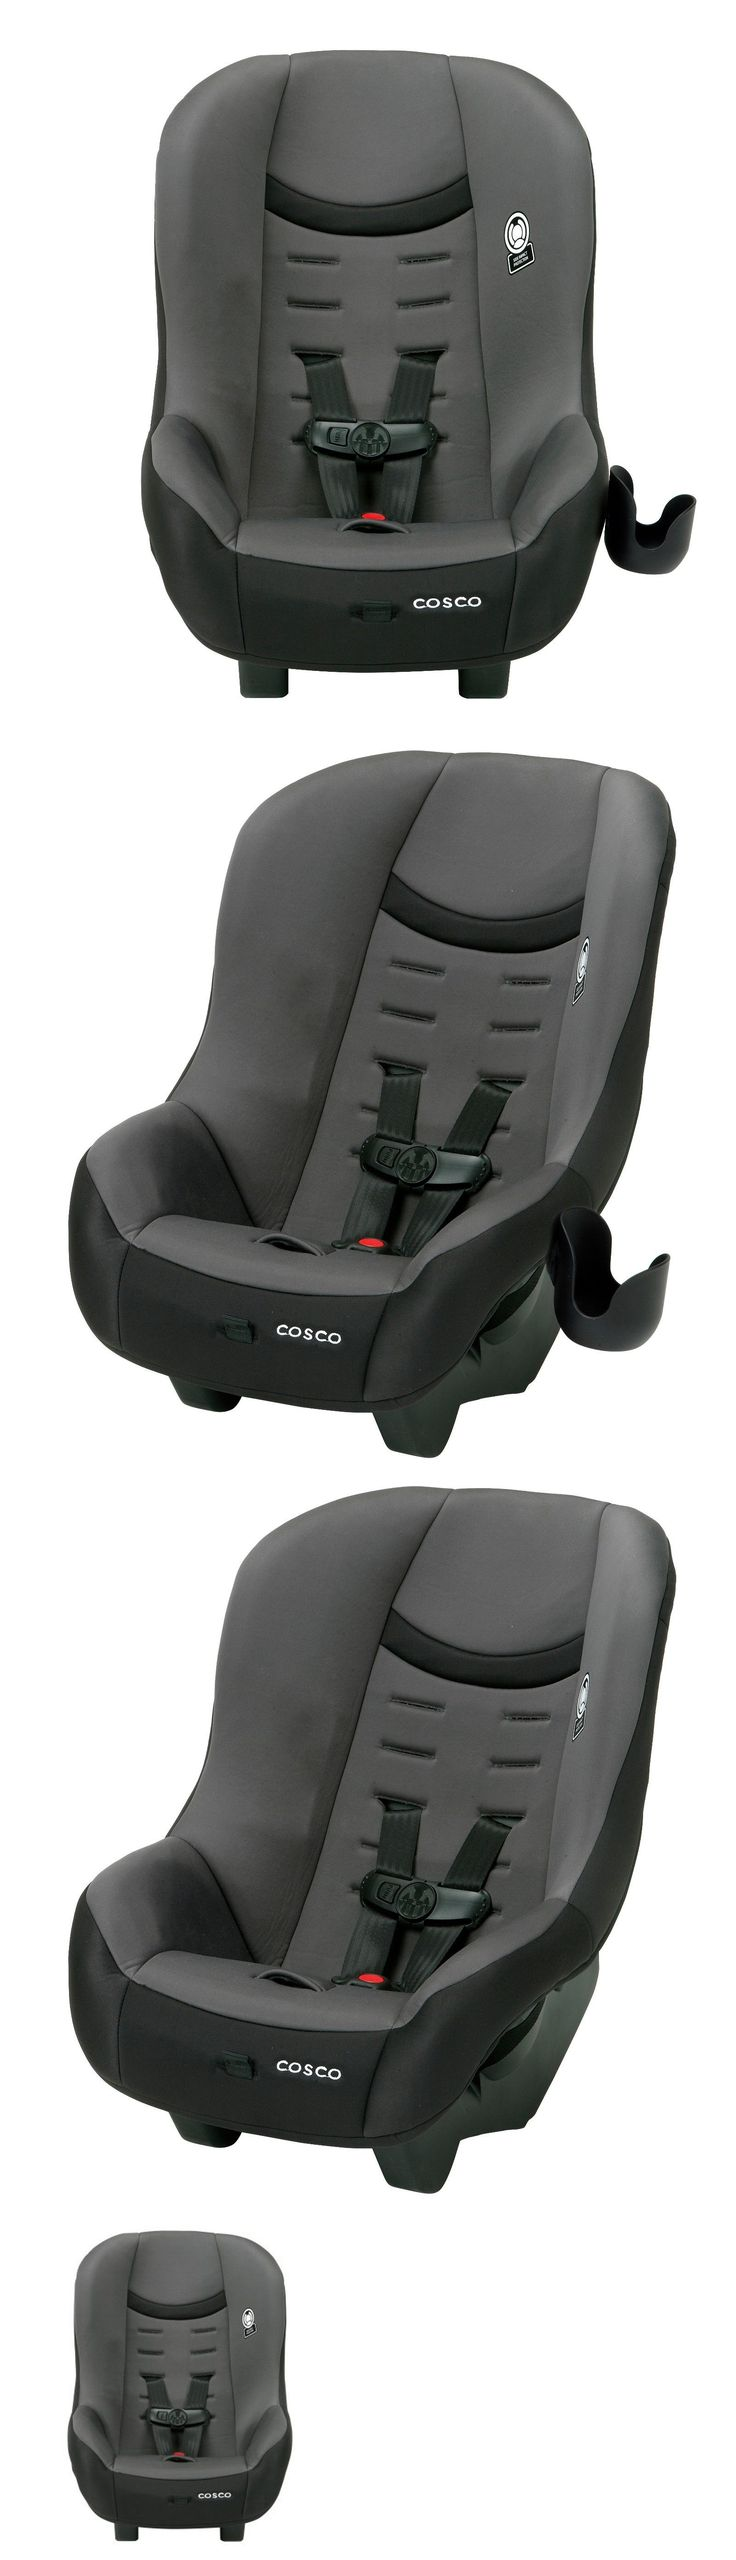 Convertible Car Seat 5-40lbs 66695: Convertible Car Seat Grey Holds 40 Lbs Tsa And Nhtsa Friendly Washable Seat Pad -> BUY IT NOW ONLY: $44.98 on eBay!